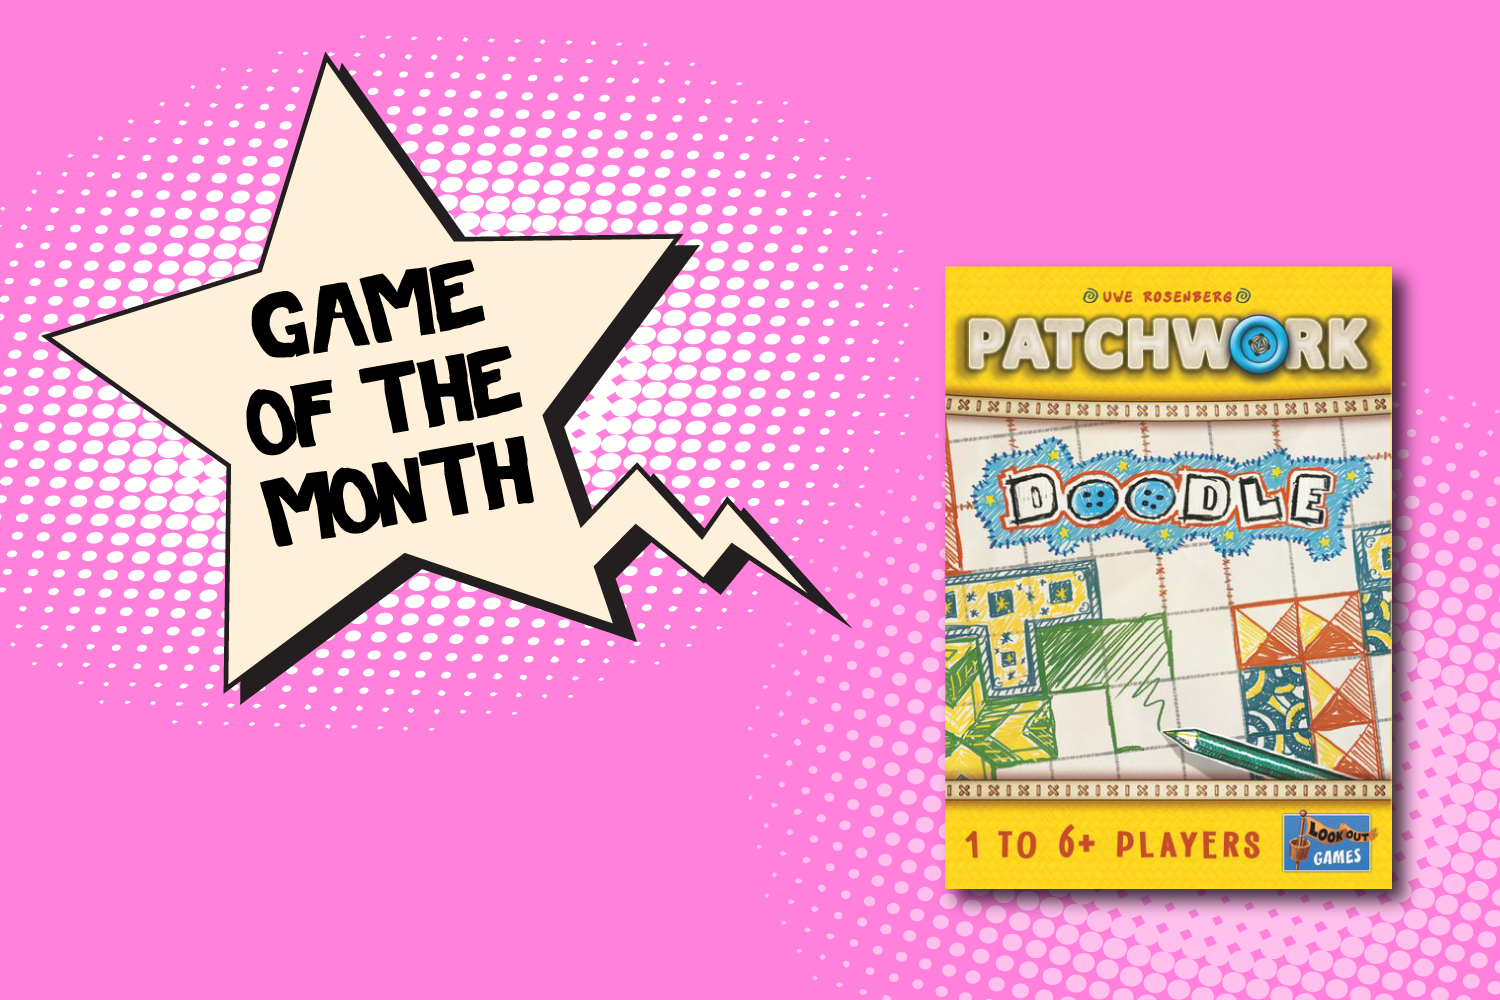 Game-of-the-Month-Patchwork-Doodle